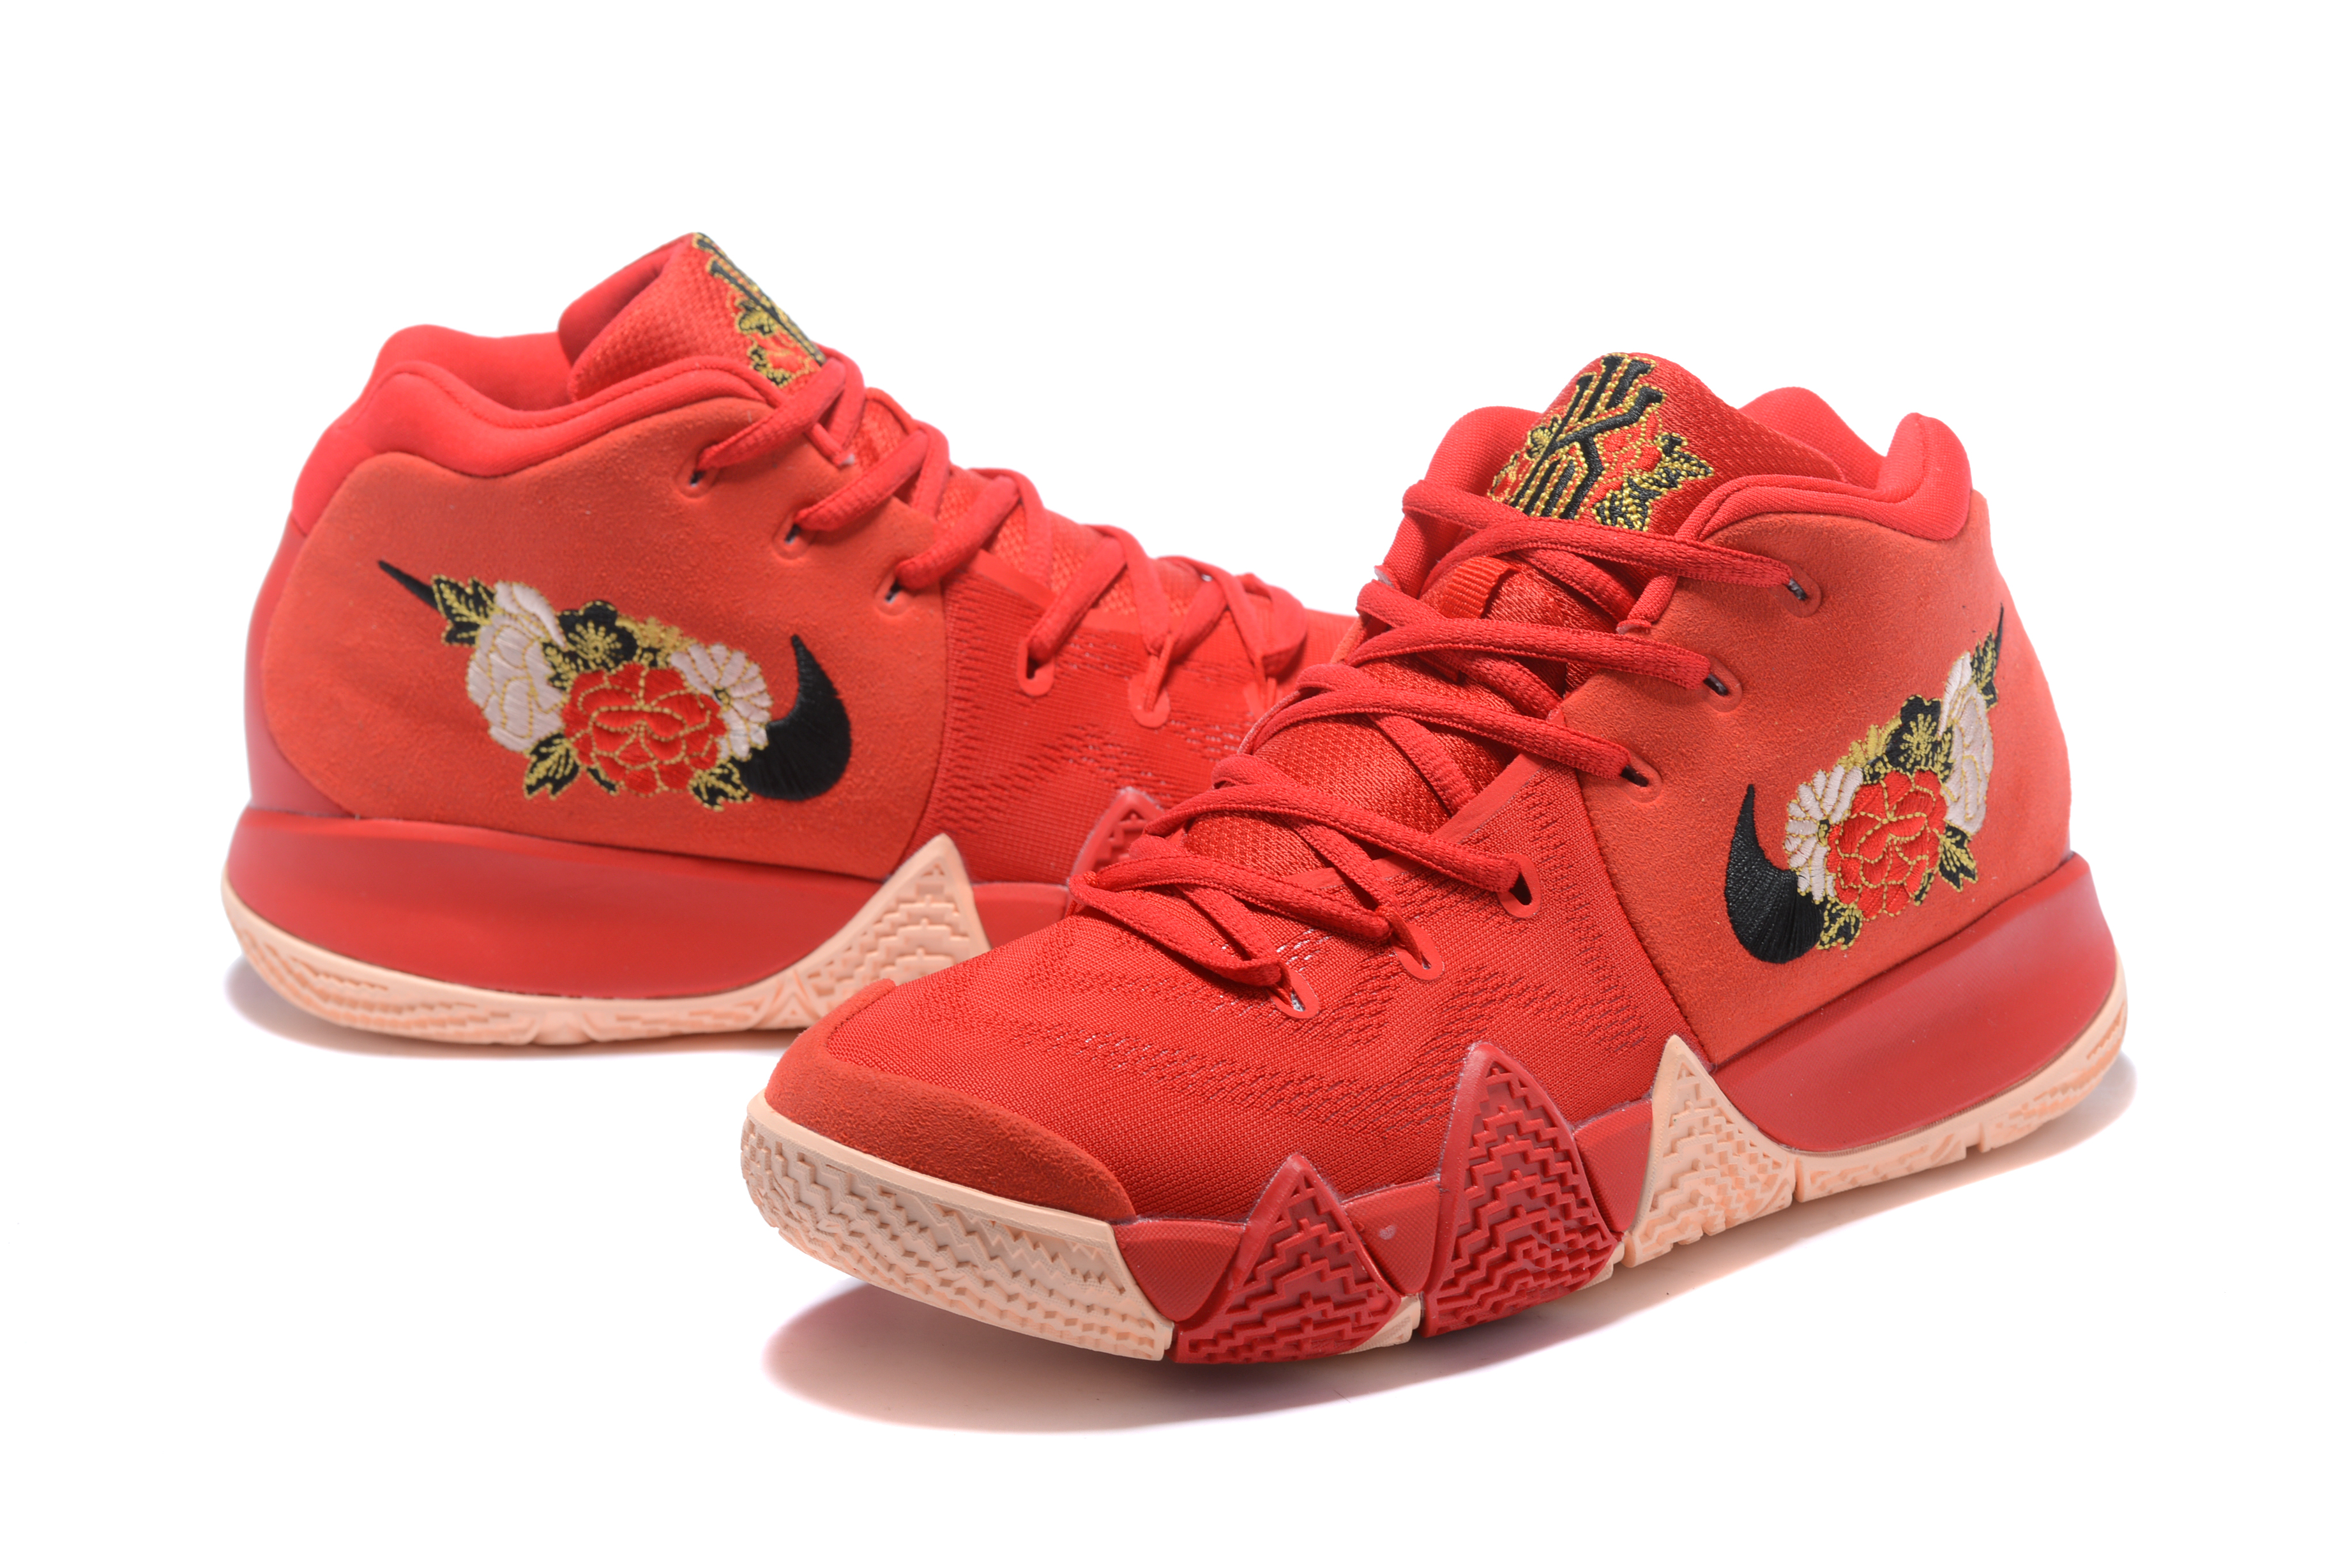 2017 Nike Kyrie 4 Chinese Red FLowers Basketball Shoes